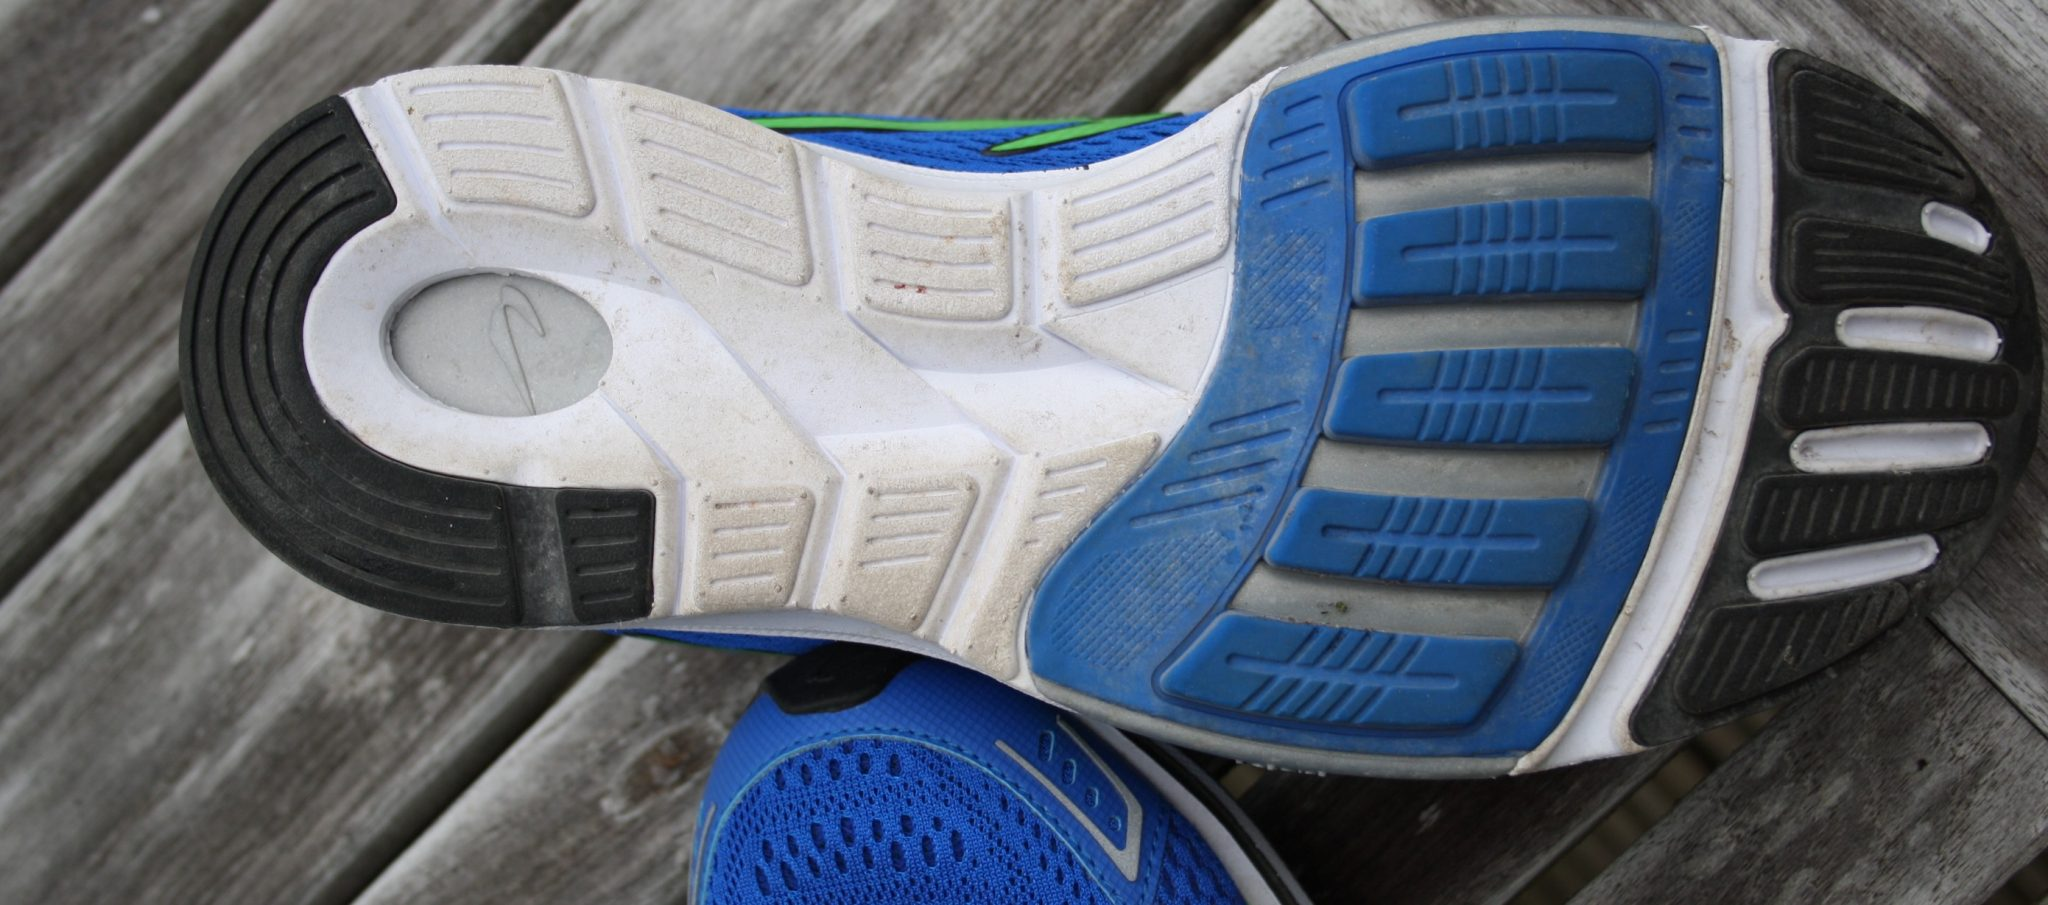 Newton Gravity 6 Running shoe